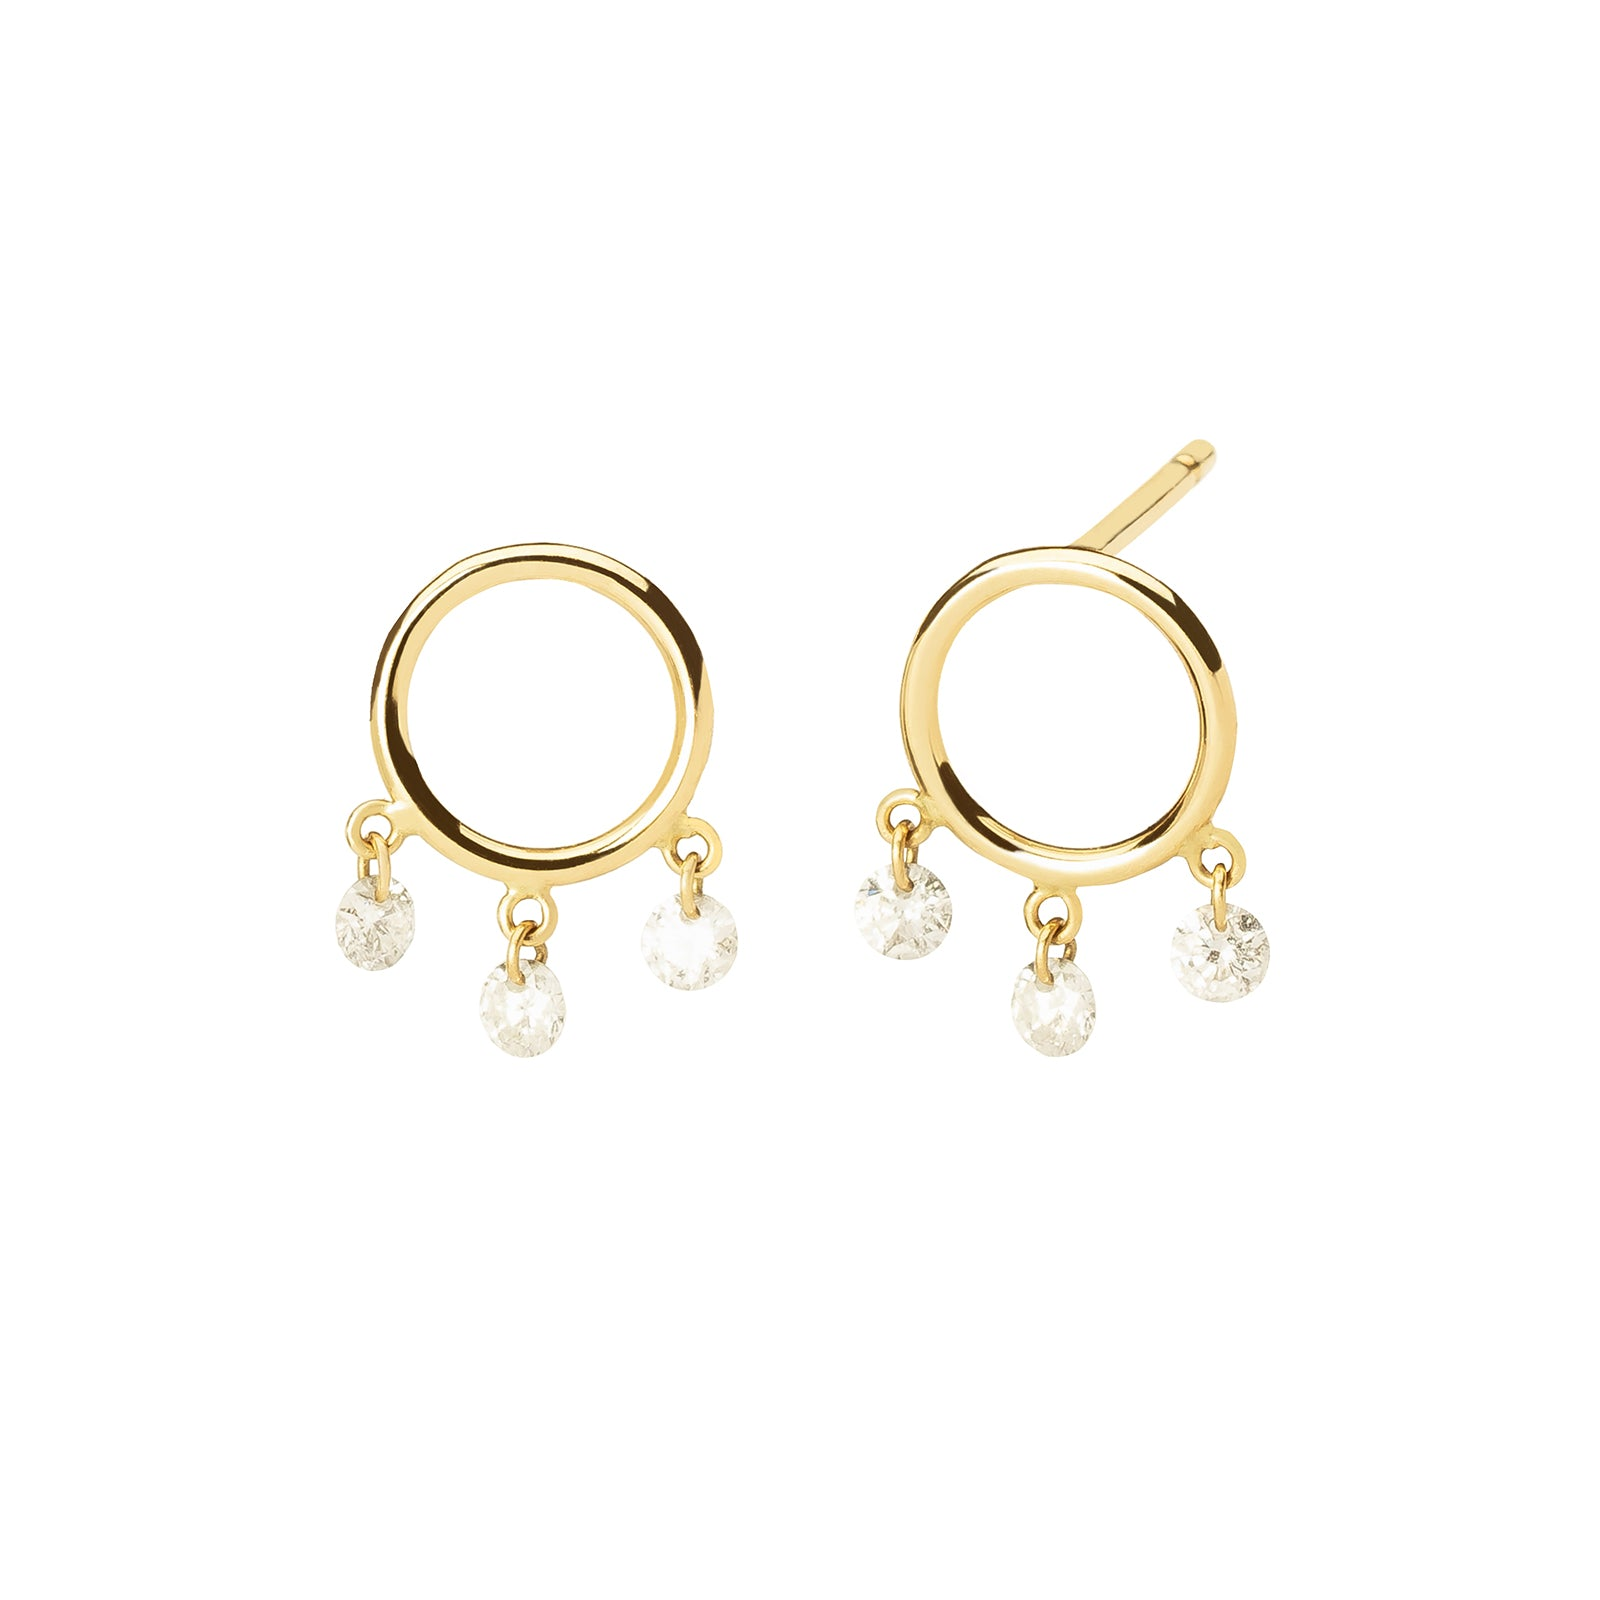 Persée Paris Boheme Trio Diamond Earrings - Yellow Gold - Earrings - Broken English Jewelry